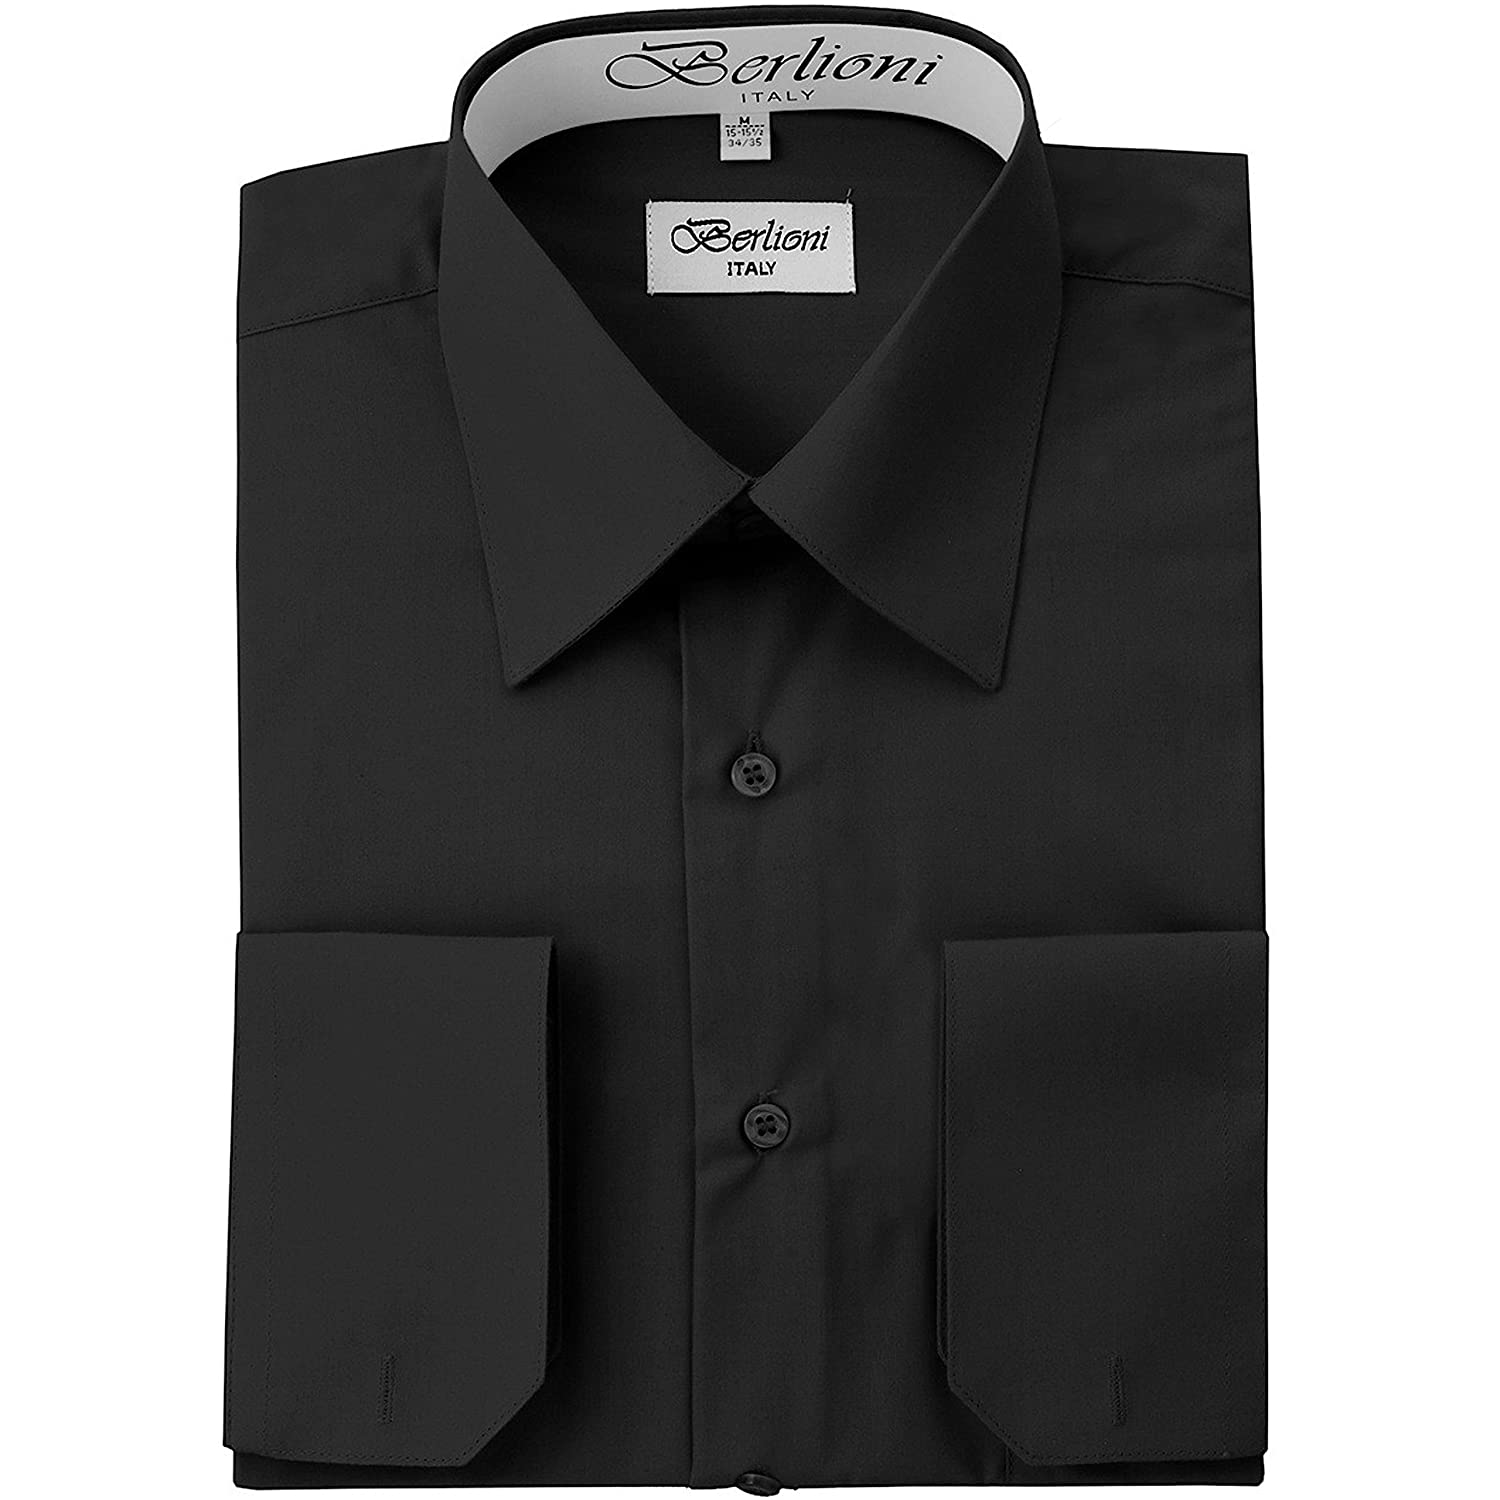 c65eac1caaf (65% polyester   35% cotton) This classically stylish men s collared dress  shirt comes in a modern fit which is slightly more ...